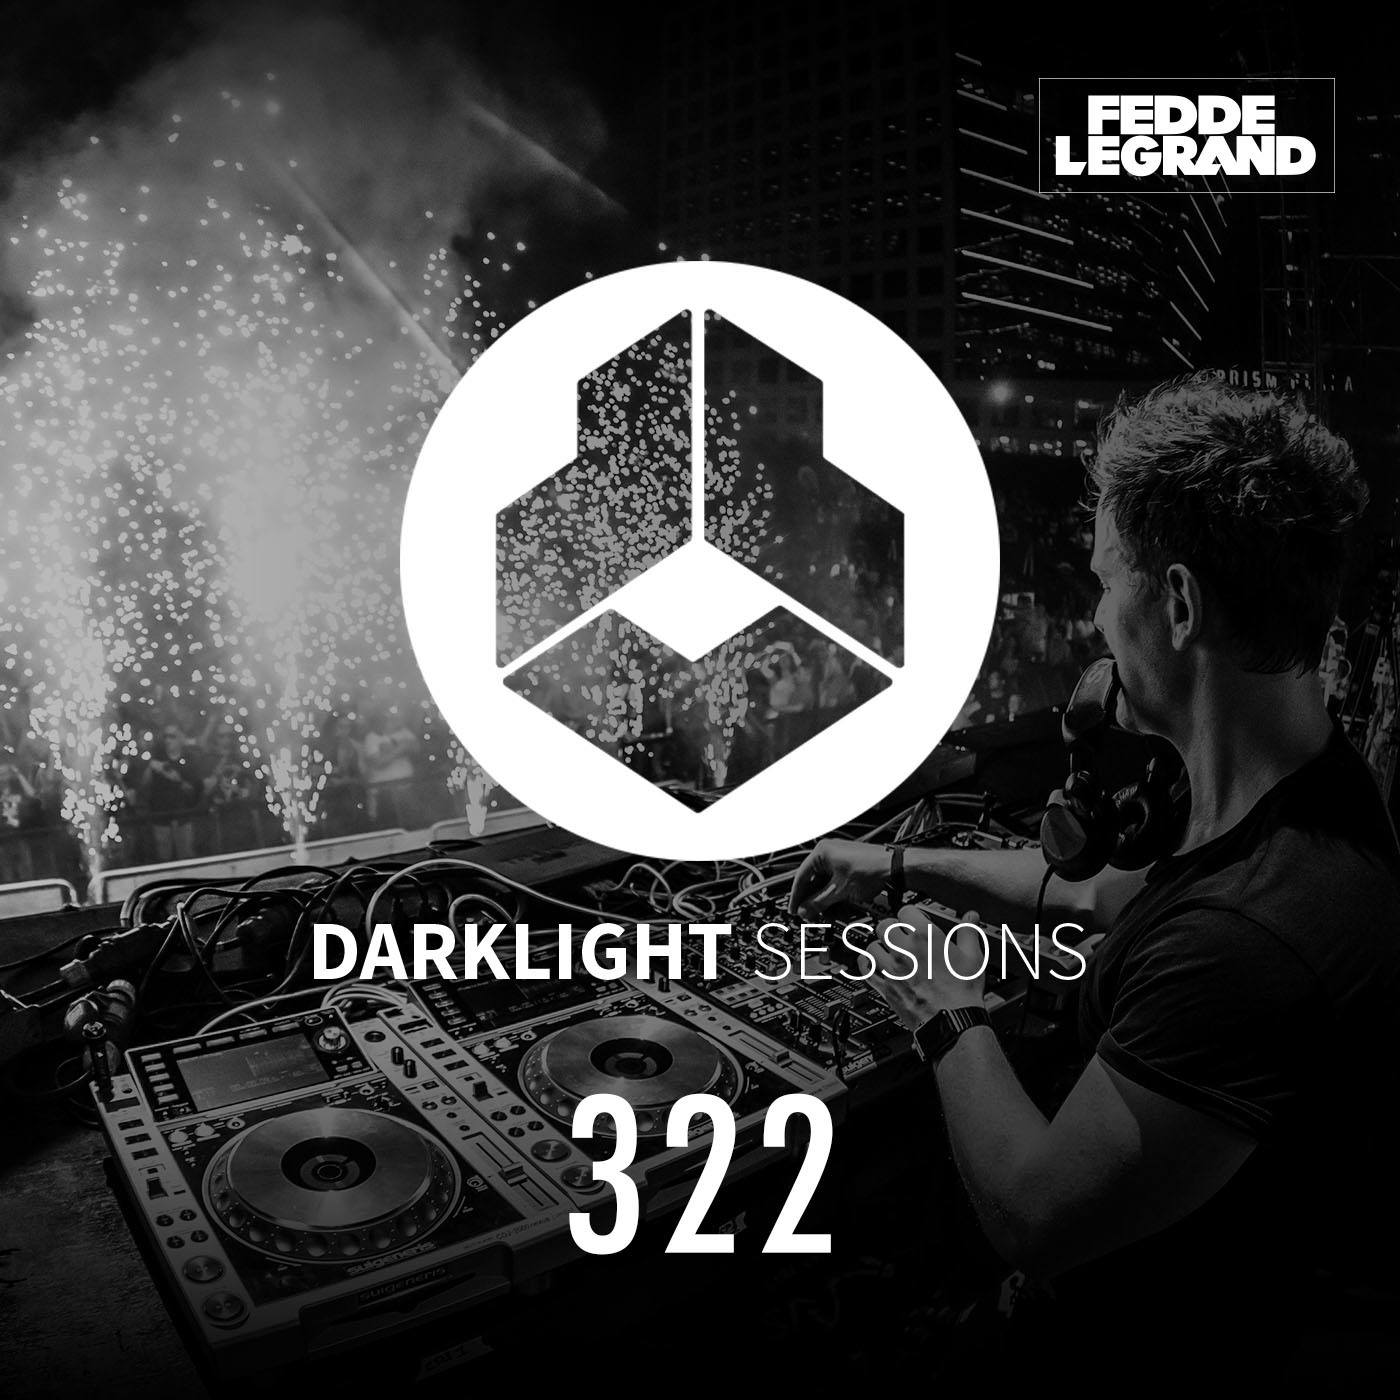 Darklight Sessions 322